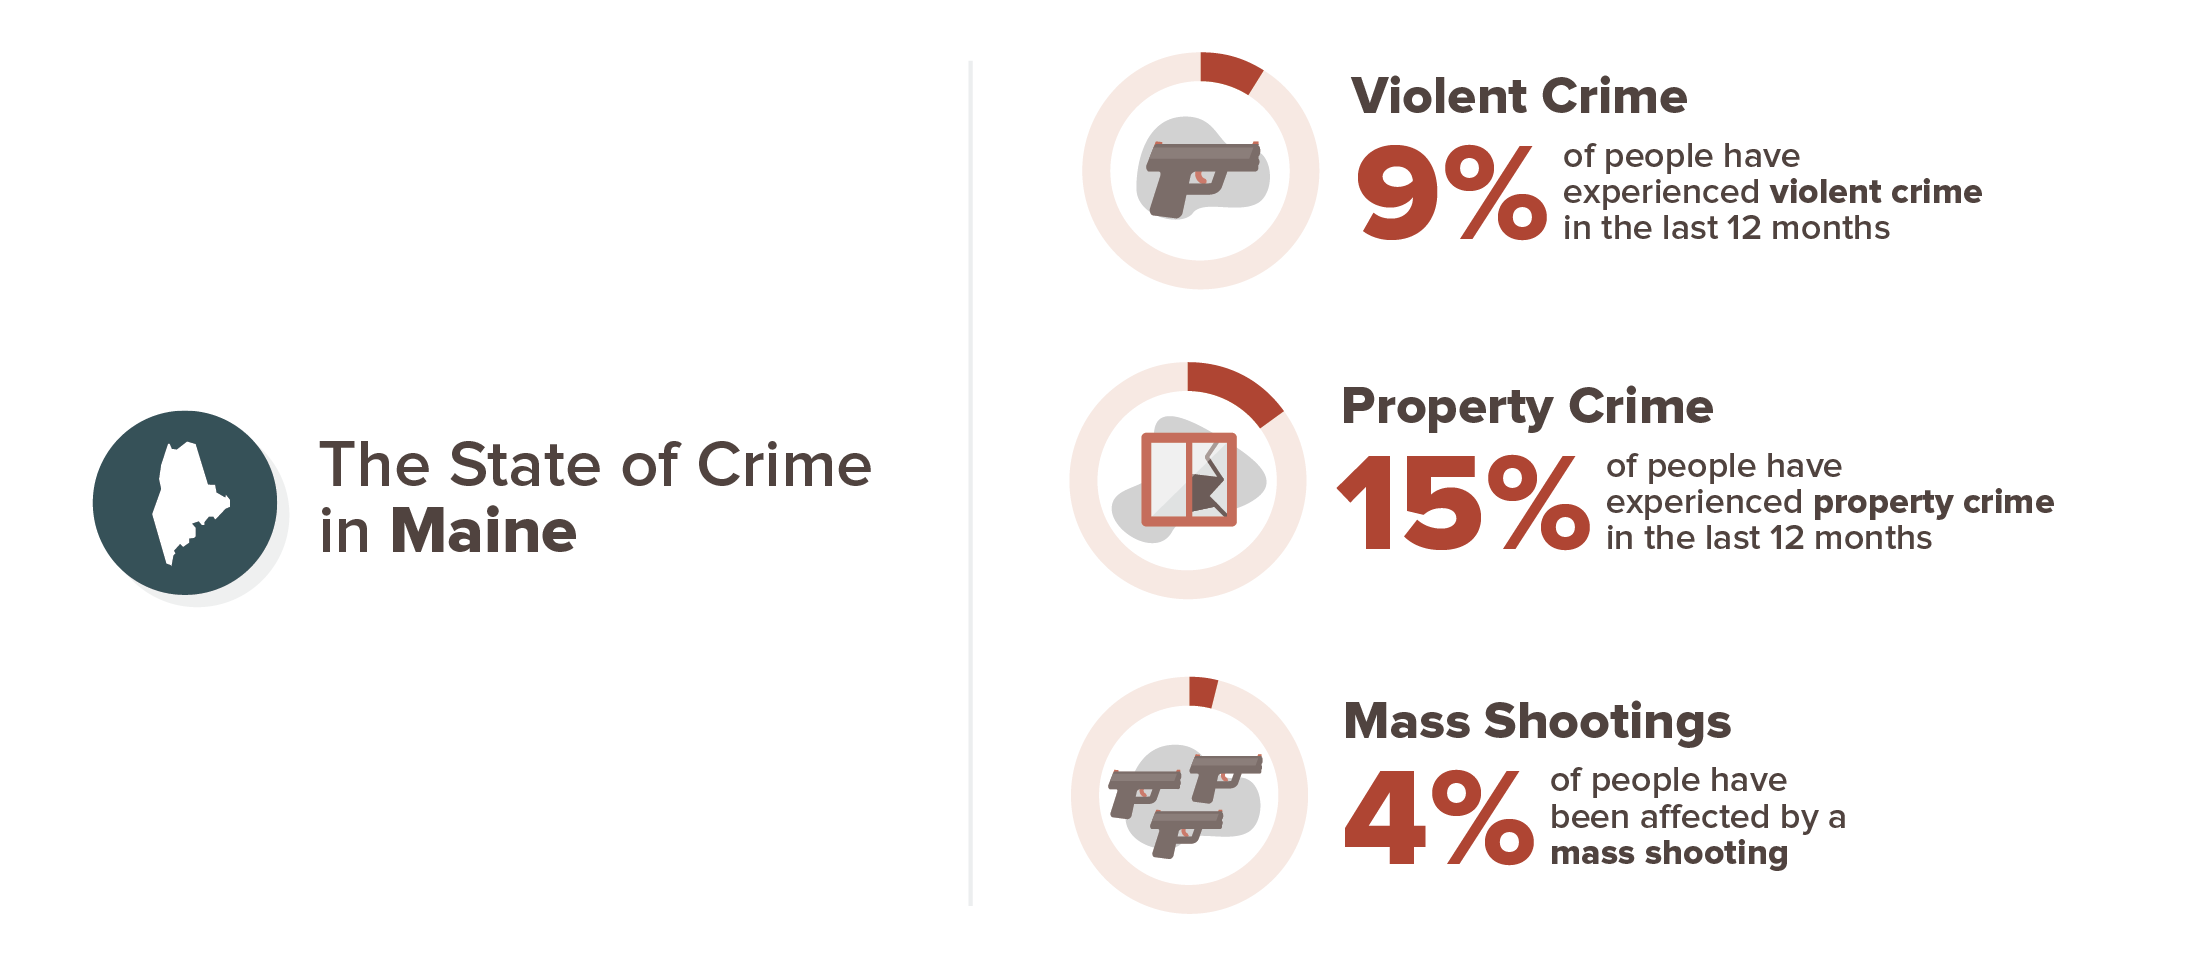 Maine crime experience infographic; 9% violent crime, 15% property crime, 4% mass shooting